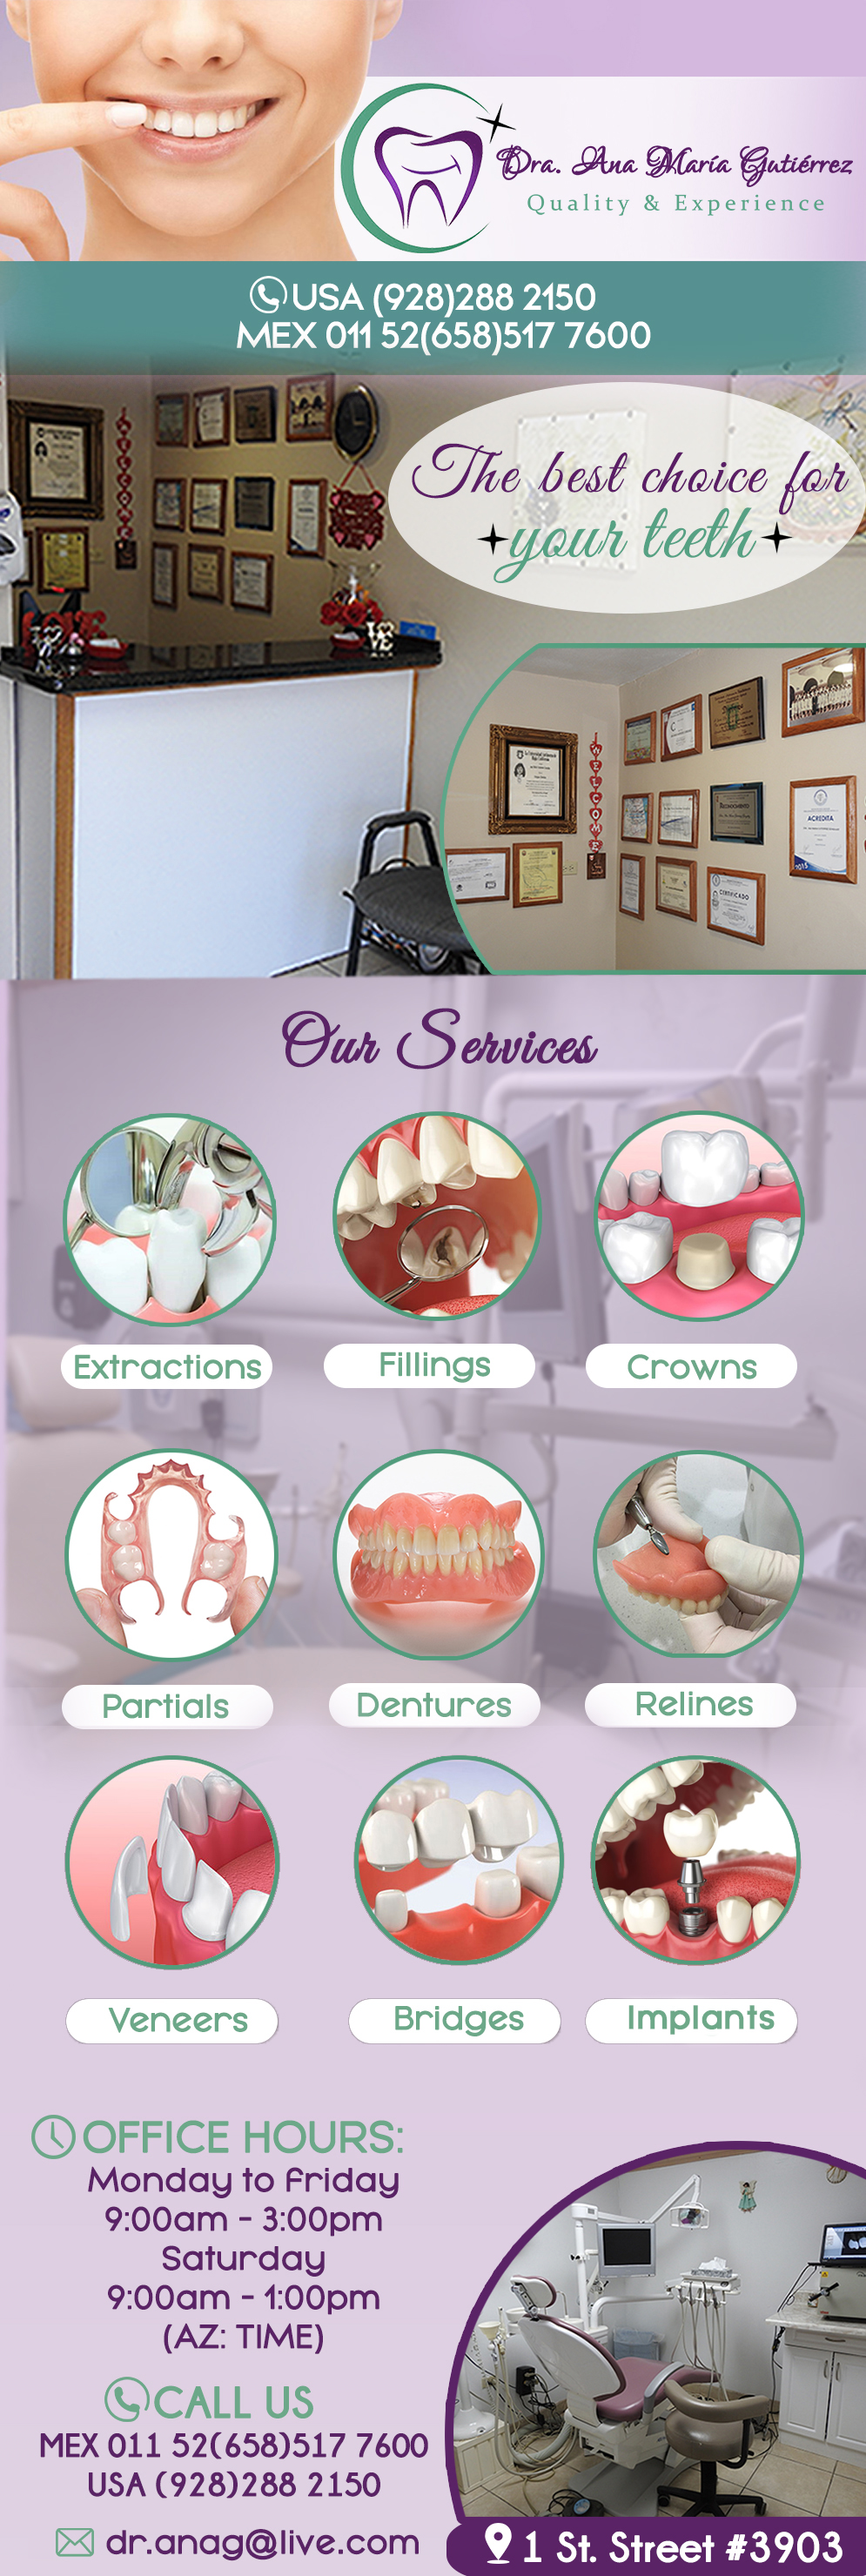 DRA. ANA MARIA GUTIERREZ in Algodones  in Algodones  DENTIST. Extraction, Fillings, Porcelain Crowns, Ceramic Crowns, Partials, Dentures, Relines, Venners, Bridges.             DENTIST DENTISTRY GENERAL IMPLANTS  DOCTORA DENTISTA GENERAL EXTRACTION FILLINGS CROWNS PORCELAIN PARTIALS DENTURES RELINES VENNERS BRIDGES